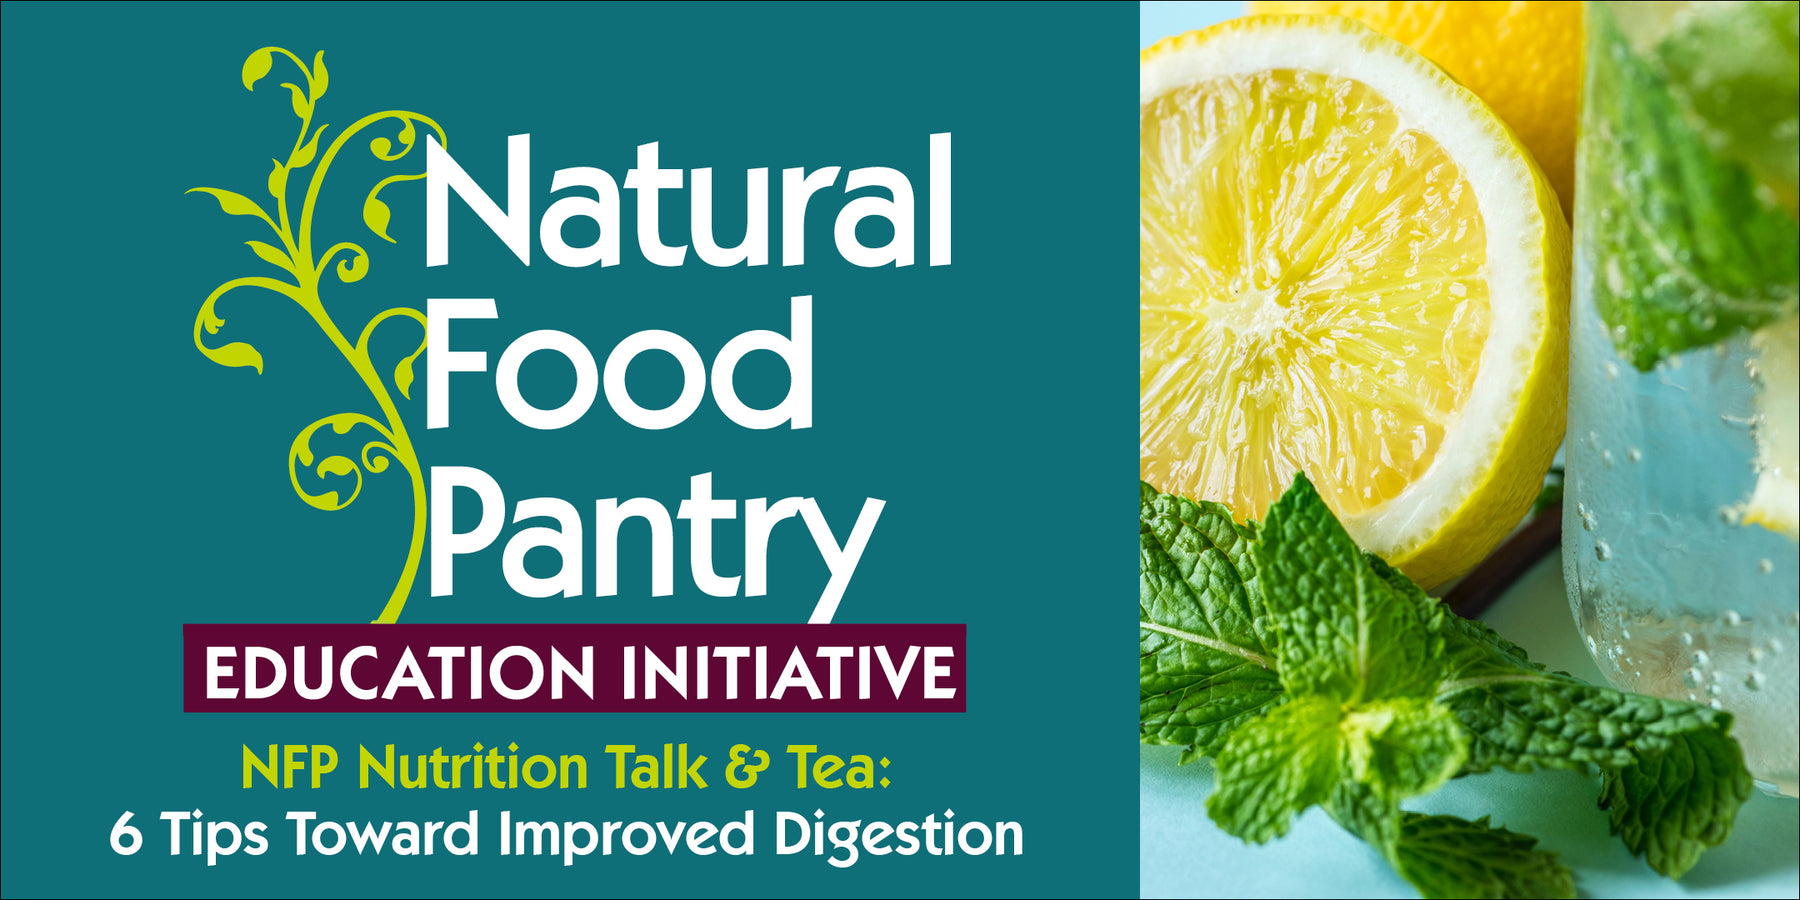 Jun 20: NFP NUTRITION TALK & TEA:  6 Tips Toward Improved Digestion